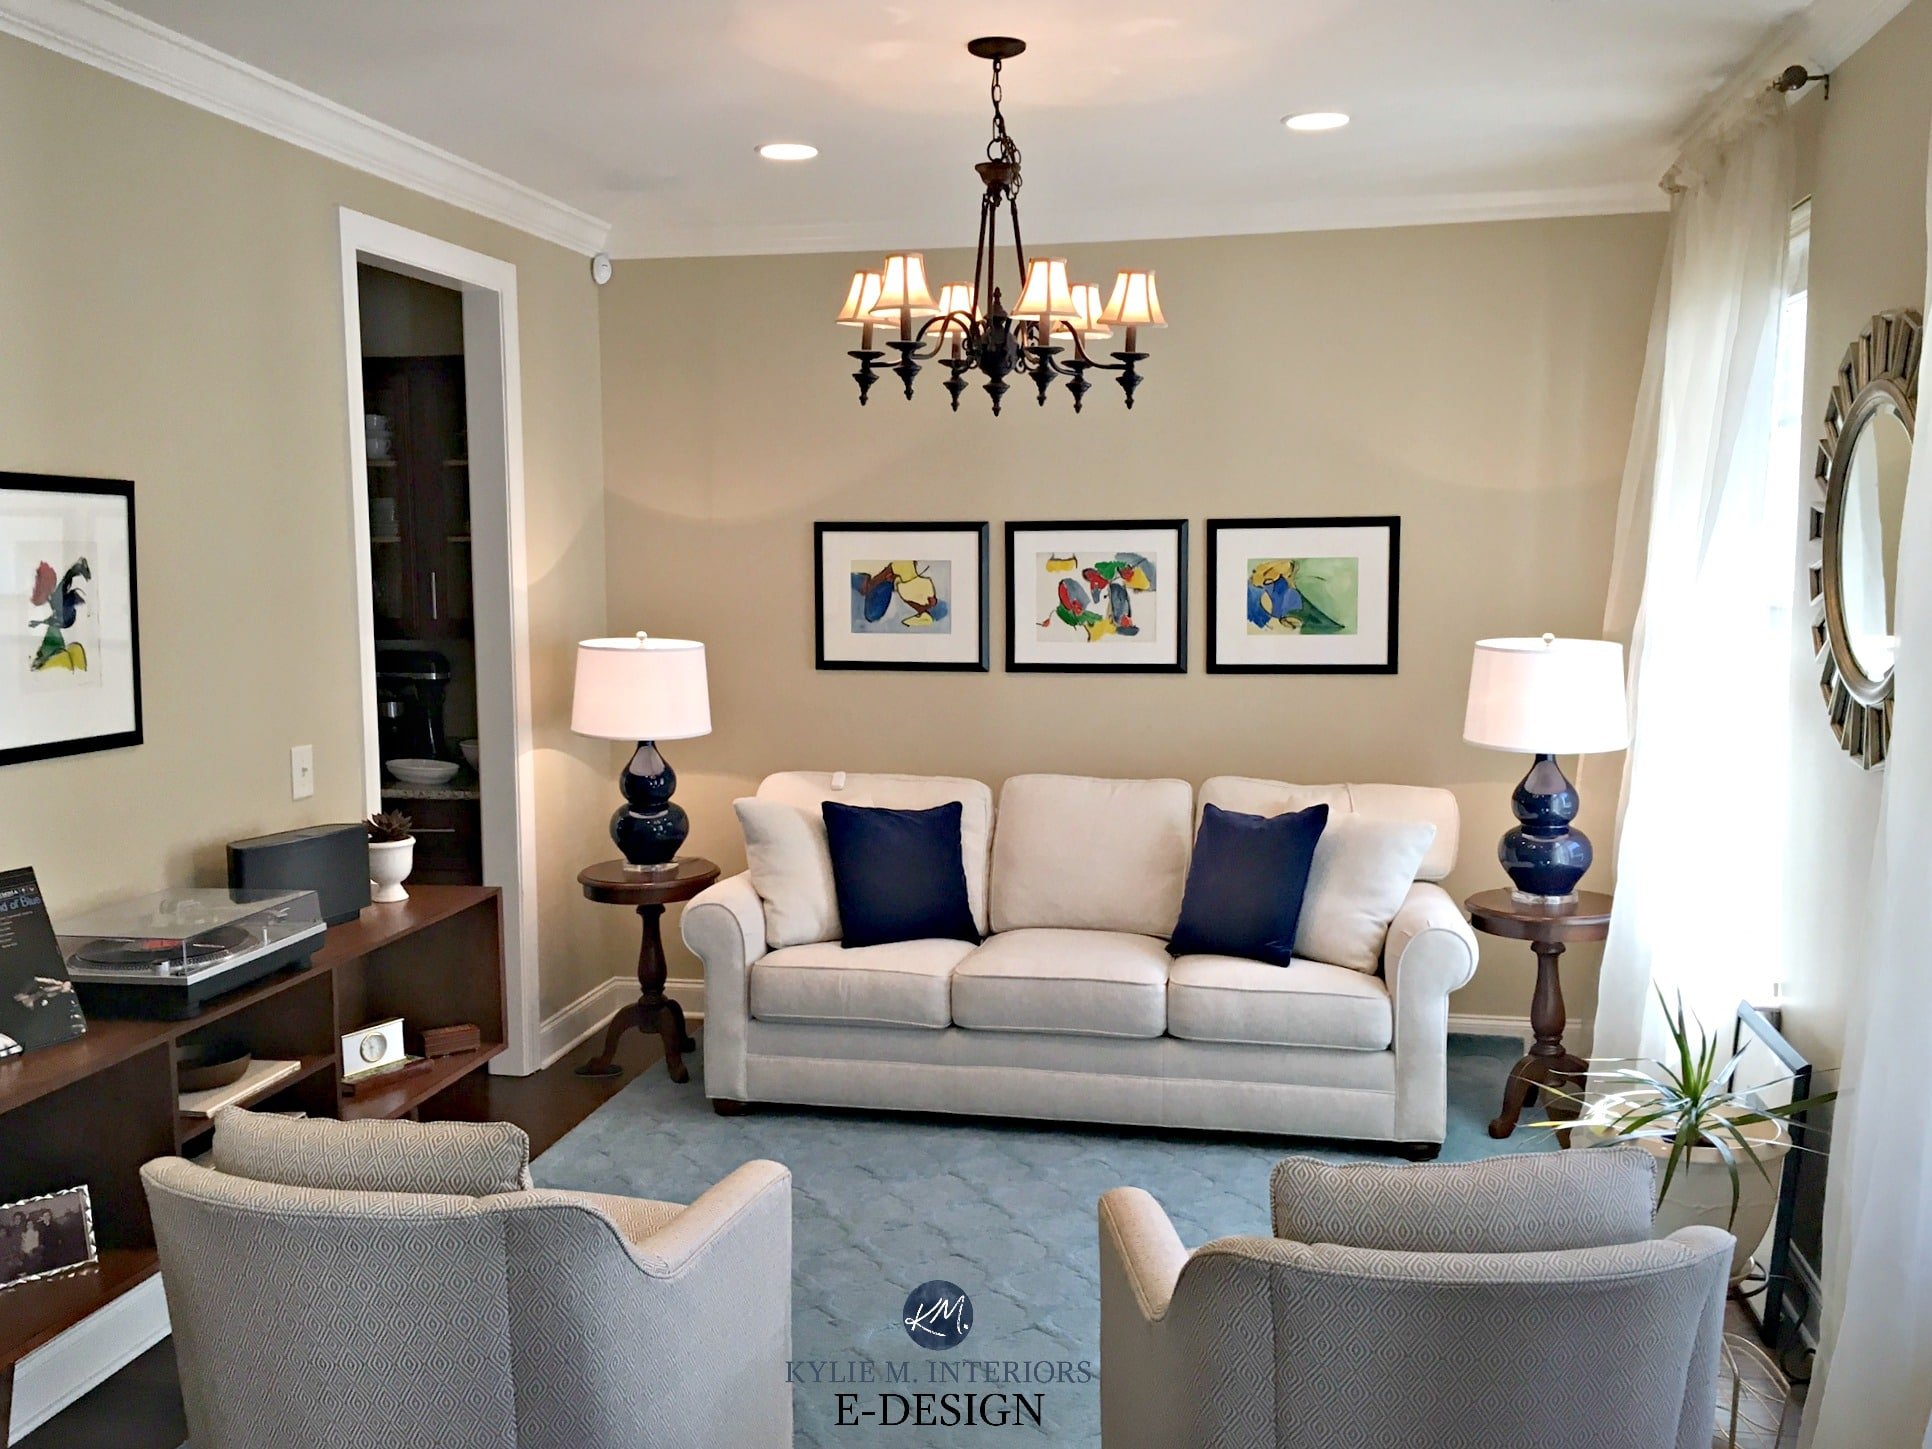 Furniture Layout and Decorating Ideas: Balance and Symmetry